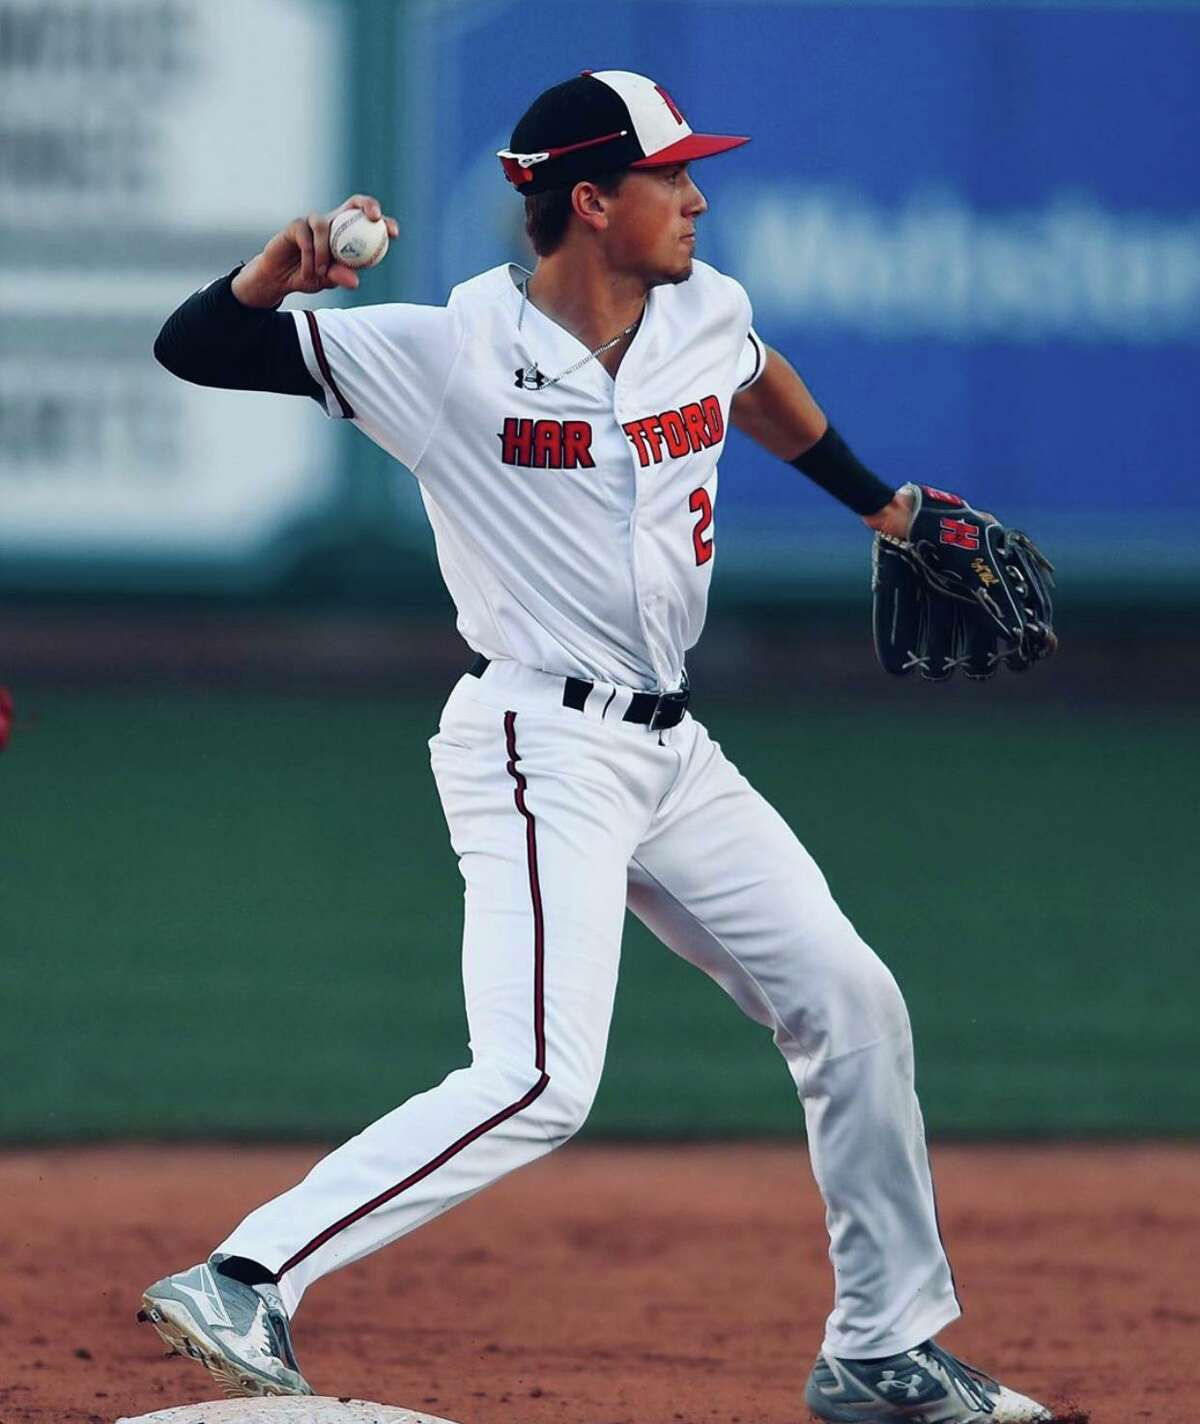 Jackson Olson, a 2016 graduate of New Milford High School and 2020 graduate of the University of Hartford, is hoping to be drafted into the MLB next month. He is shown above as the starting short stop while playing at the University of Hartford.